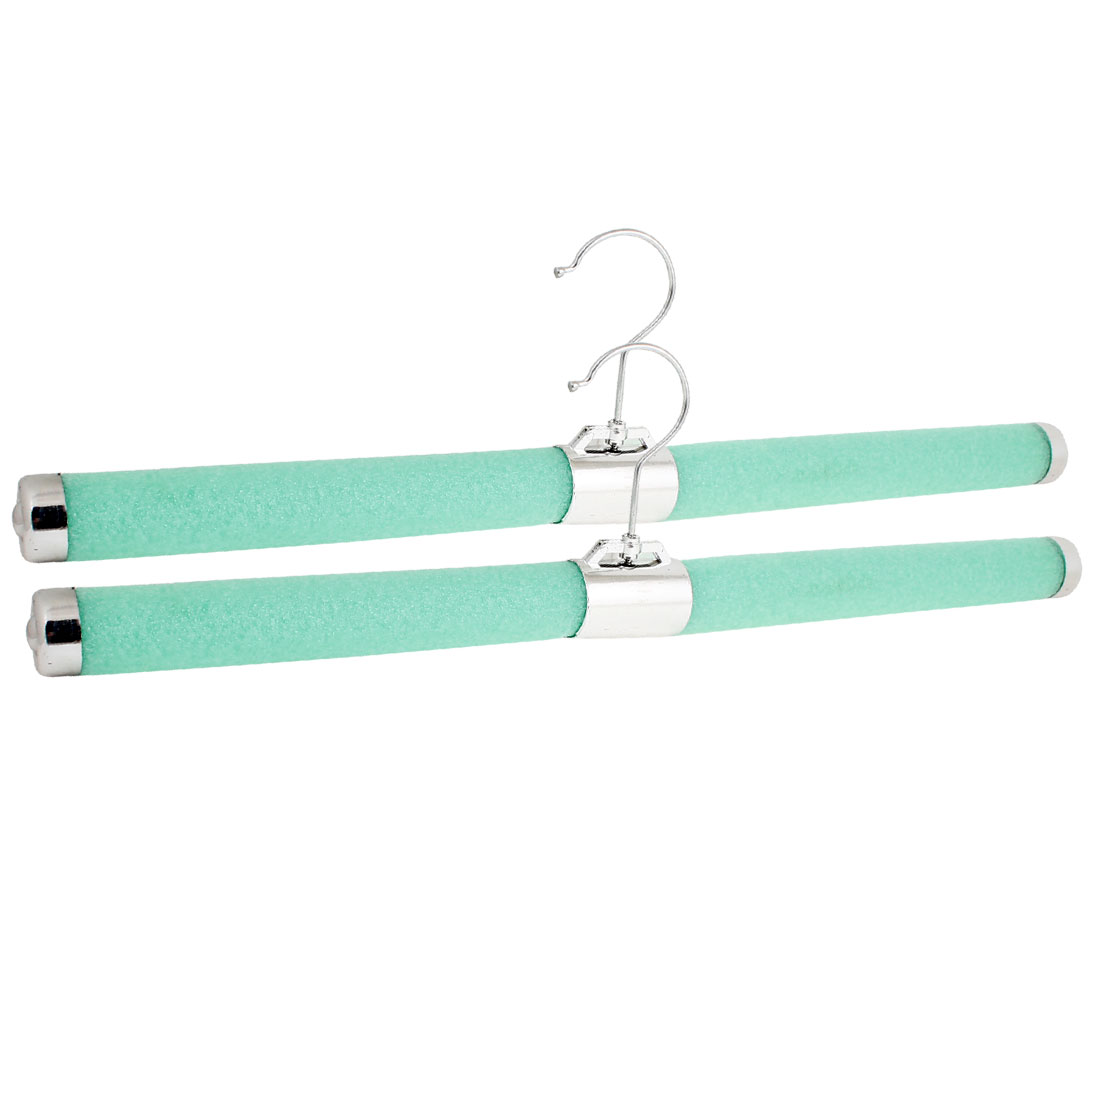 2 Pcs Green Foam Padded Metal Hook Clothes Lingerie Hanger